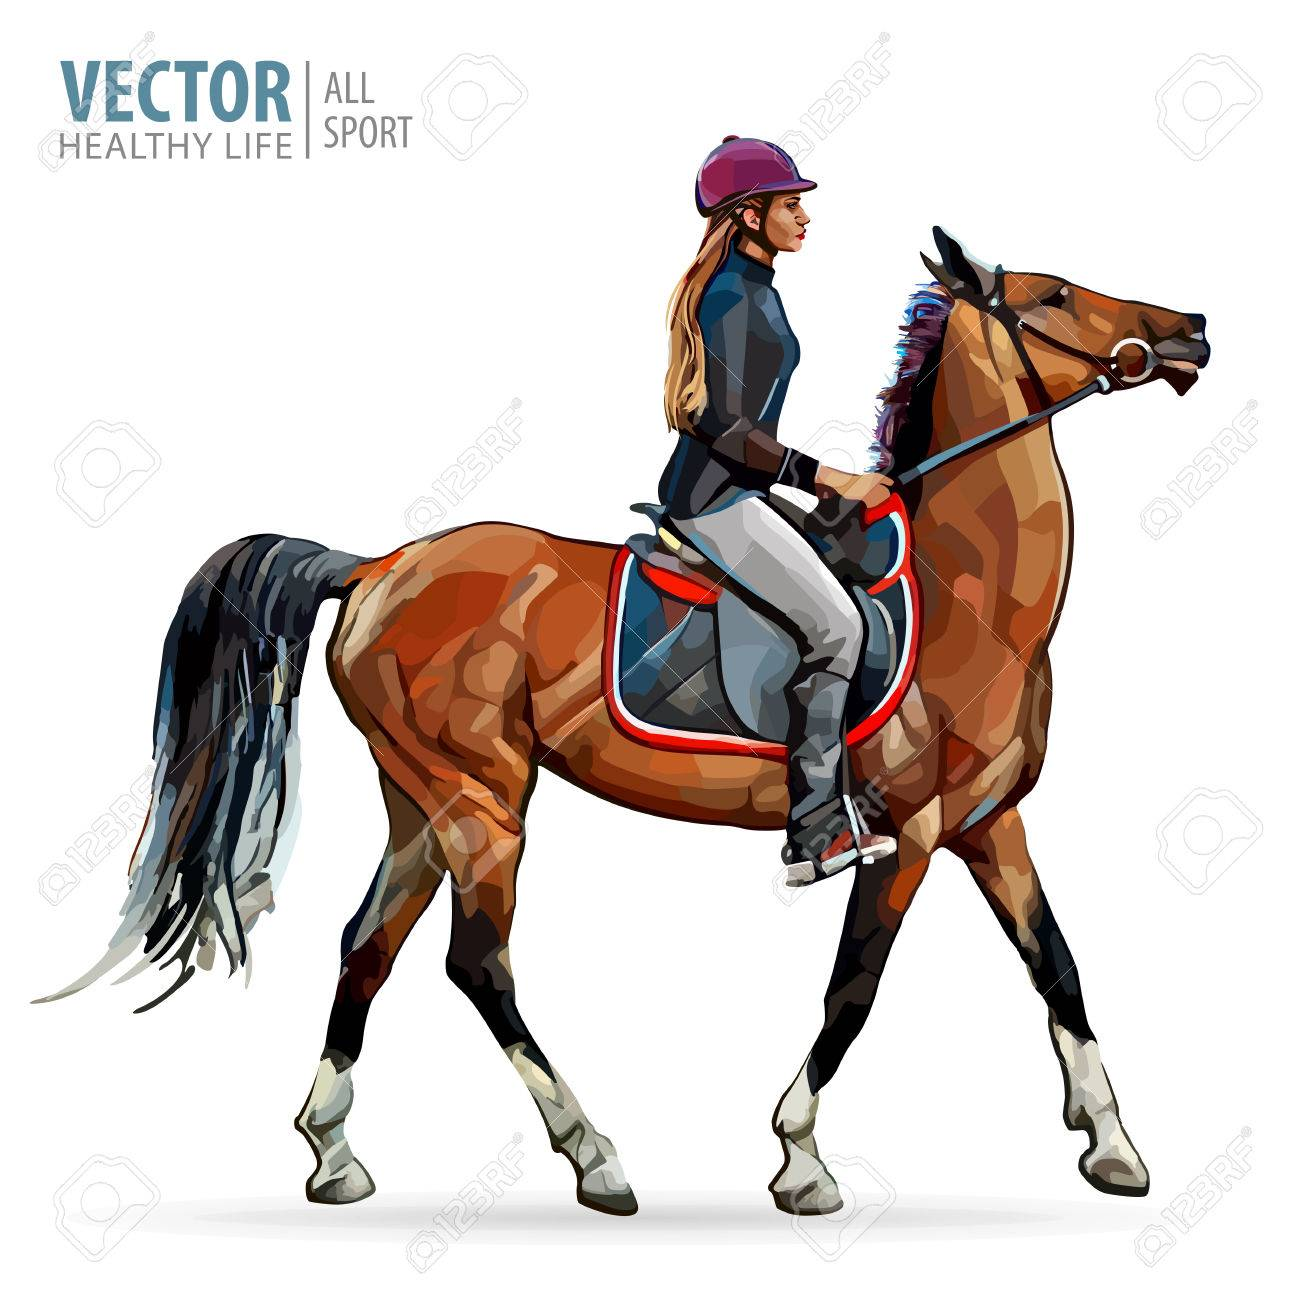 Horse With Rider Jockey On Horse Horse Riding Woman On Horse Royalty Free Cliparts Vectors And Stock Illustration Image 83088023